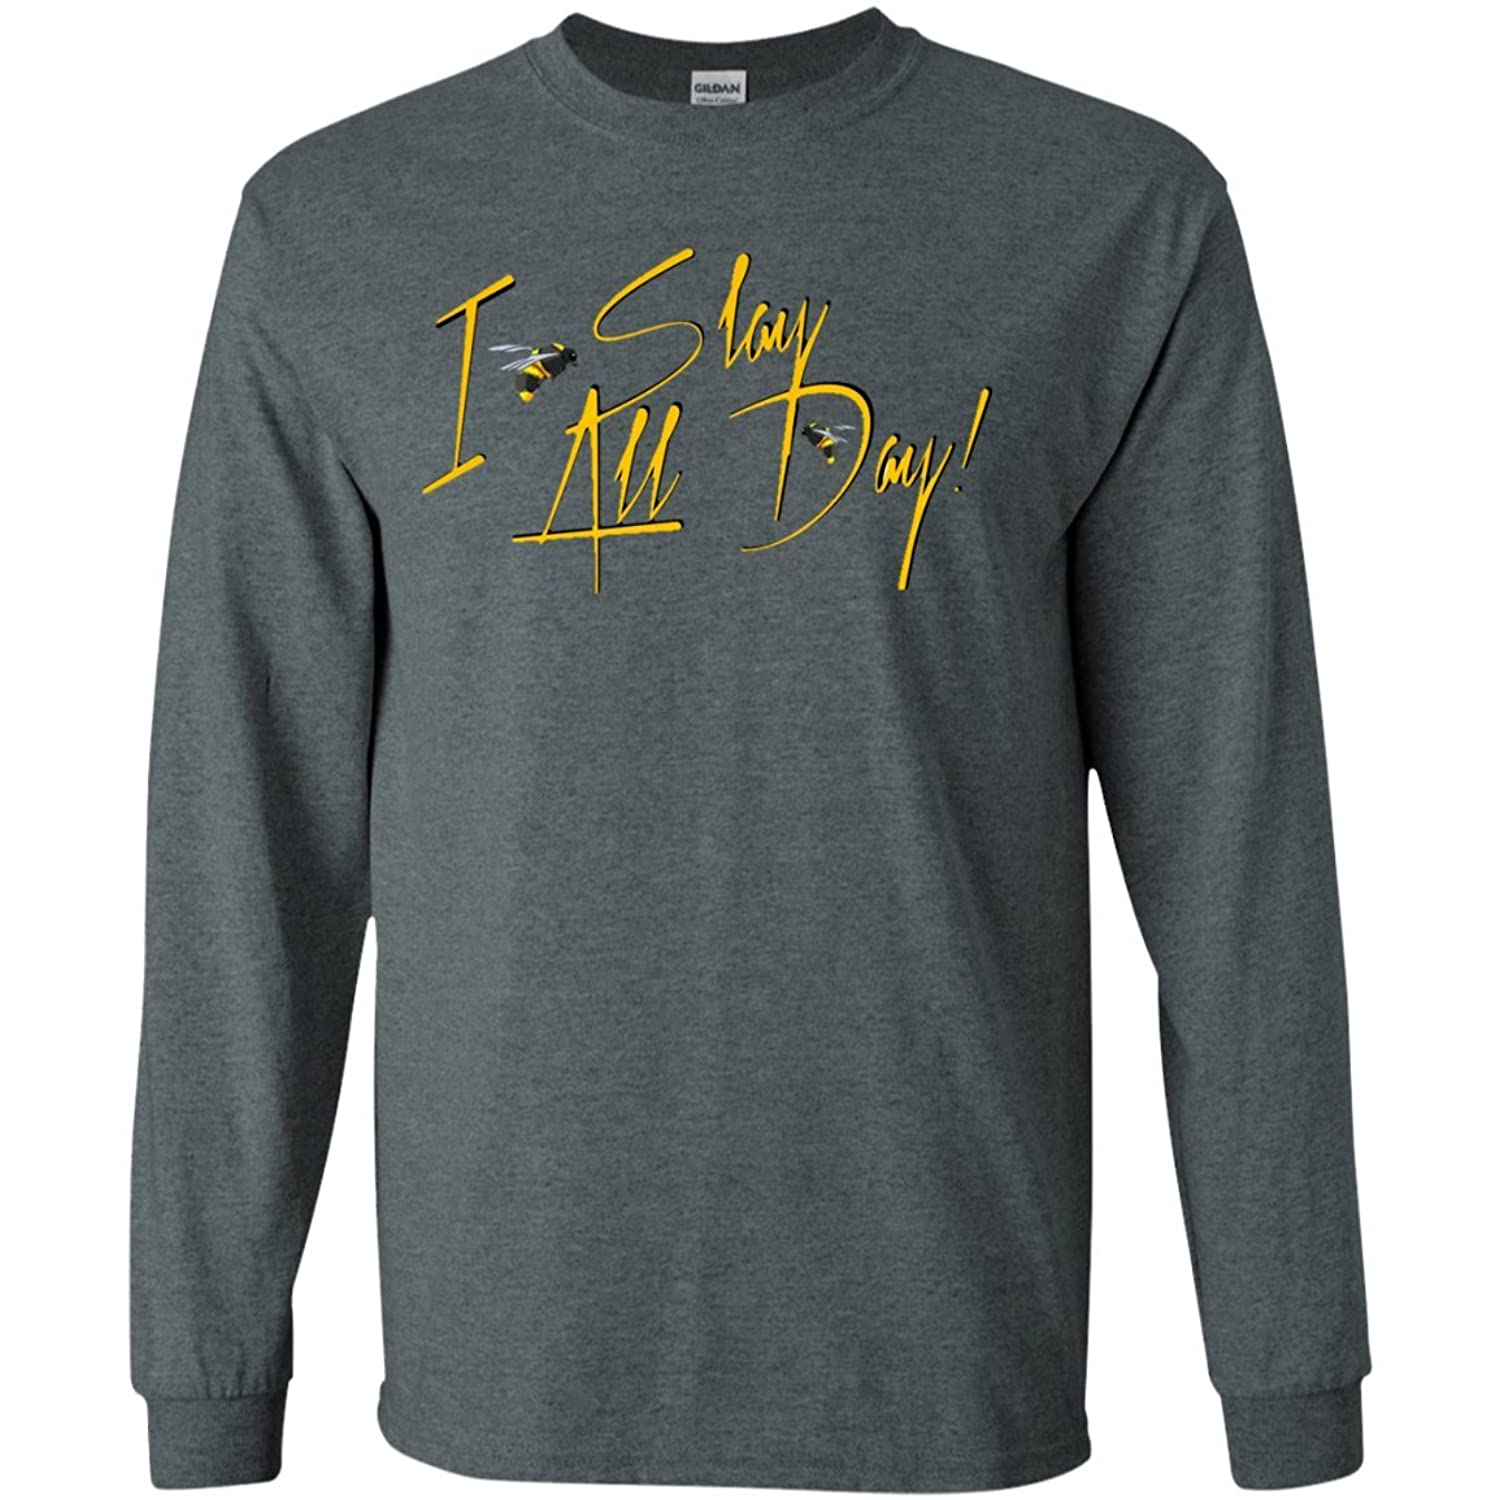 I Slay All Day - Cause I Slay Long Sleeves Tshirt